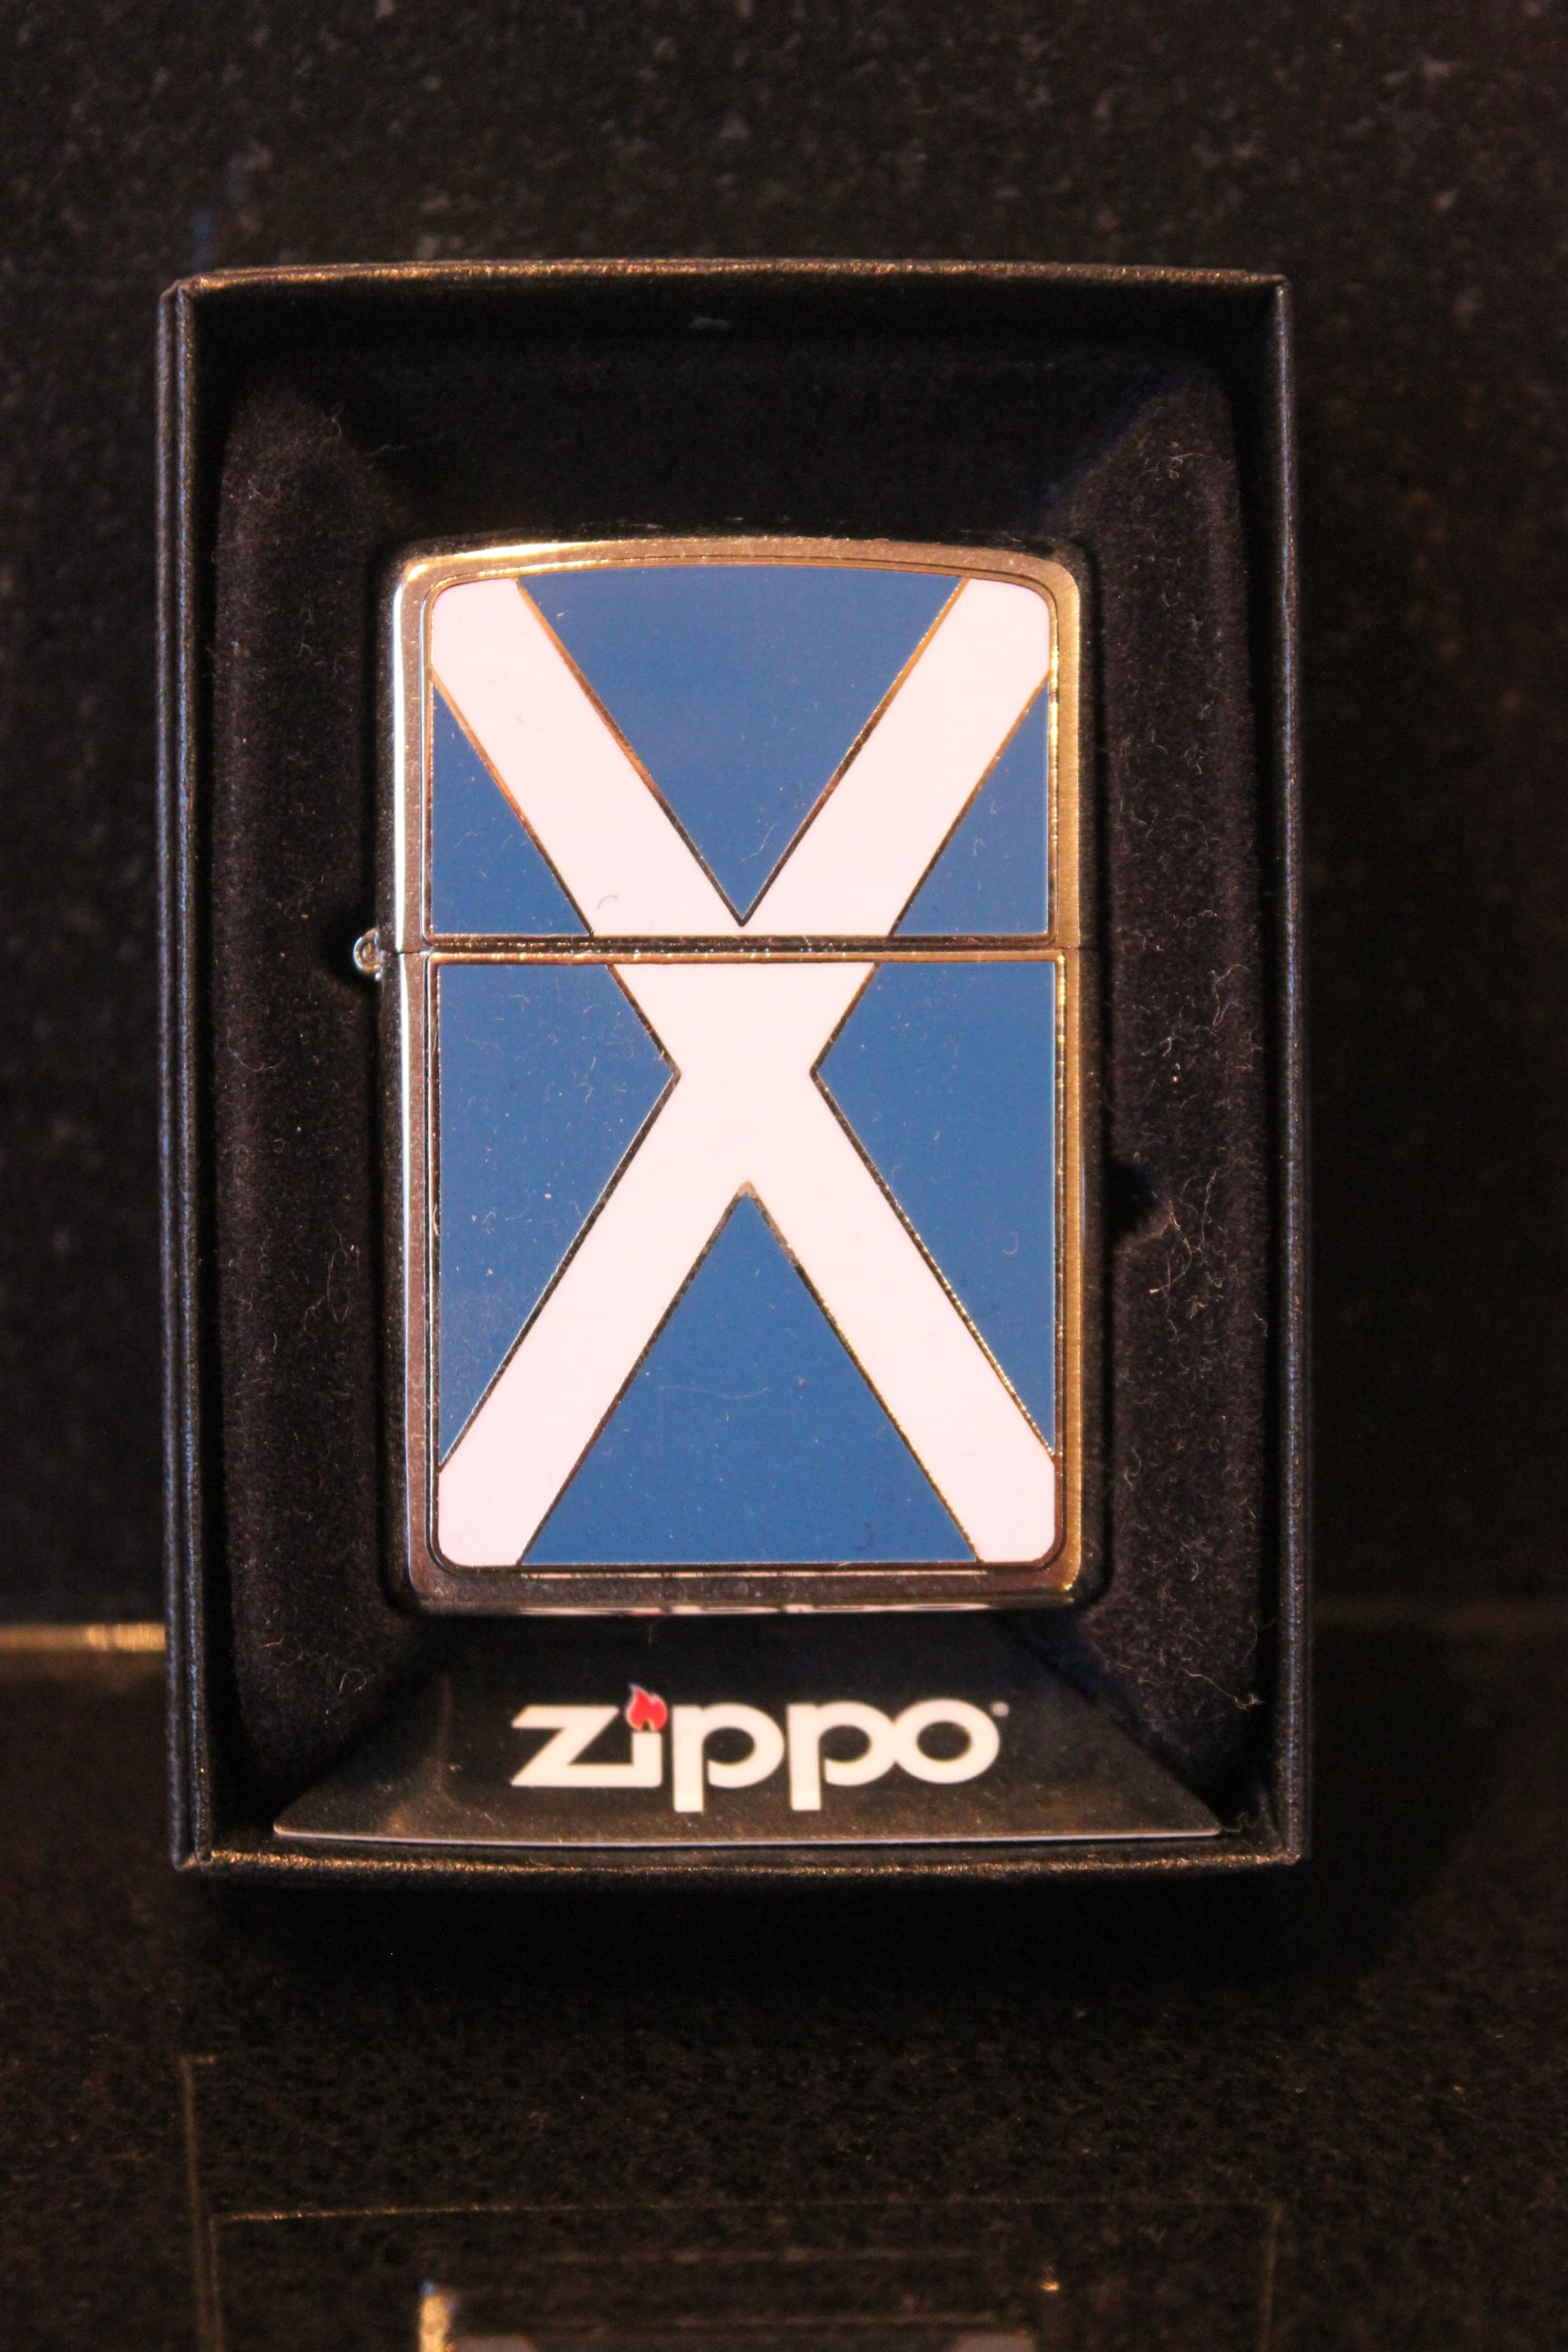 zippo lighters scottish gifts gifts for smokers gifts from scotland